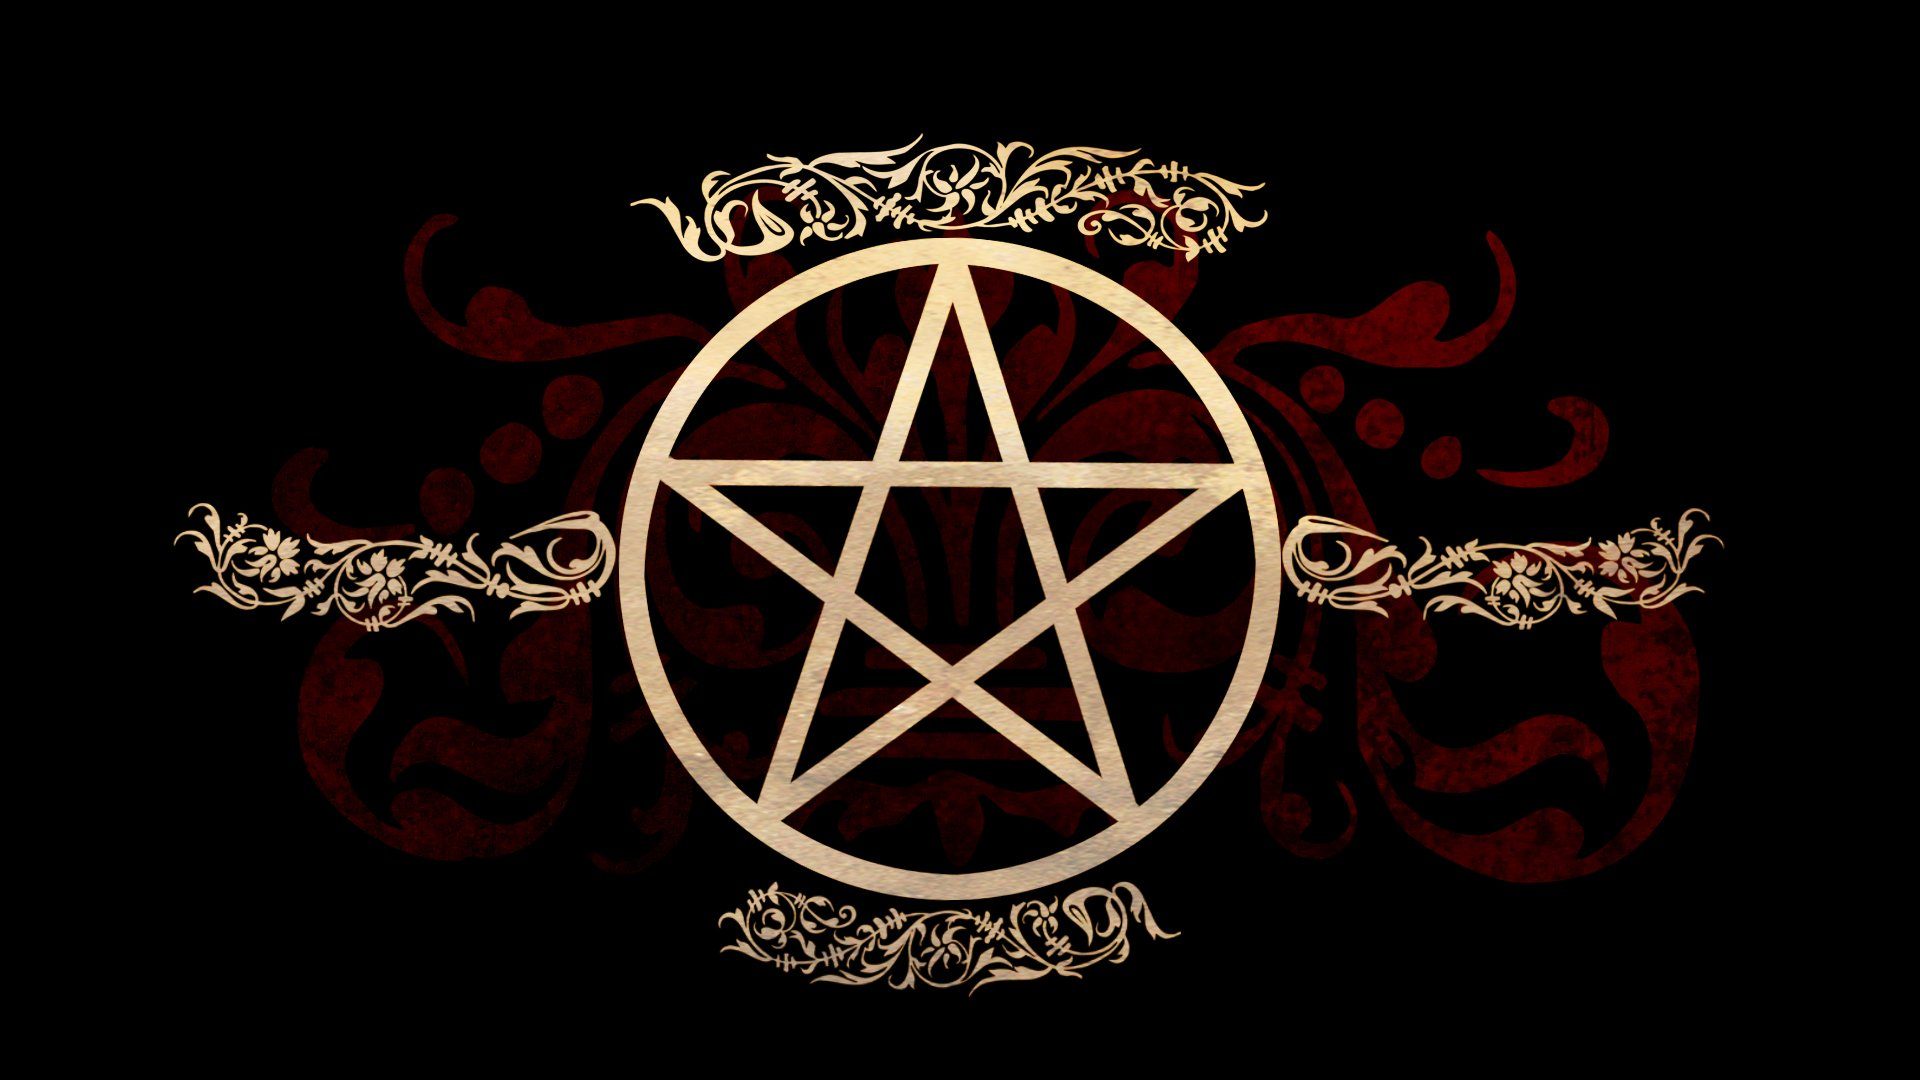 Wiccan backgrounds